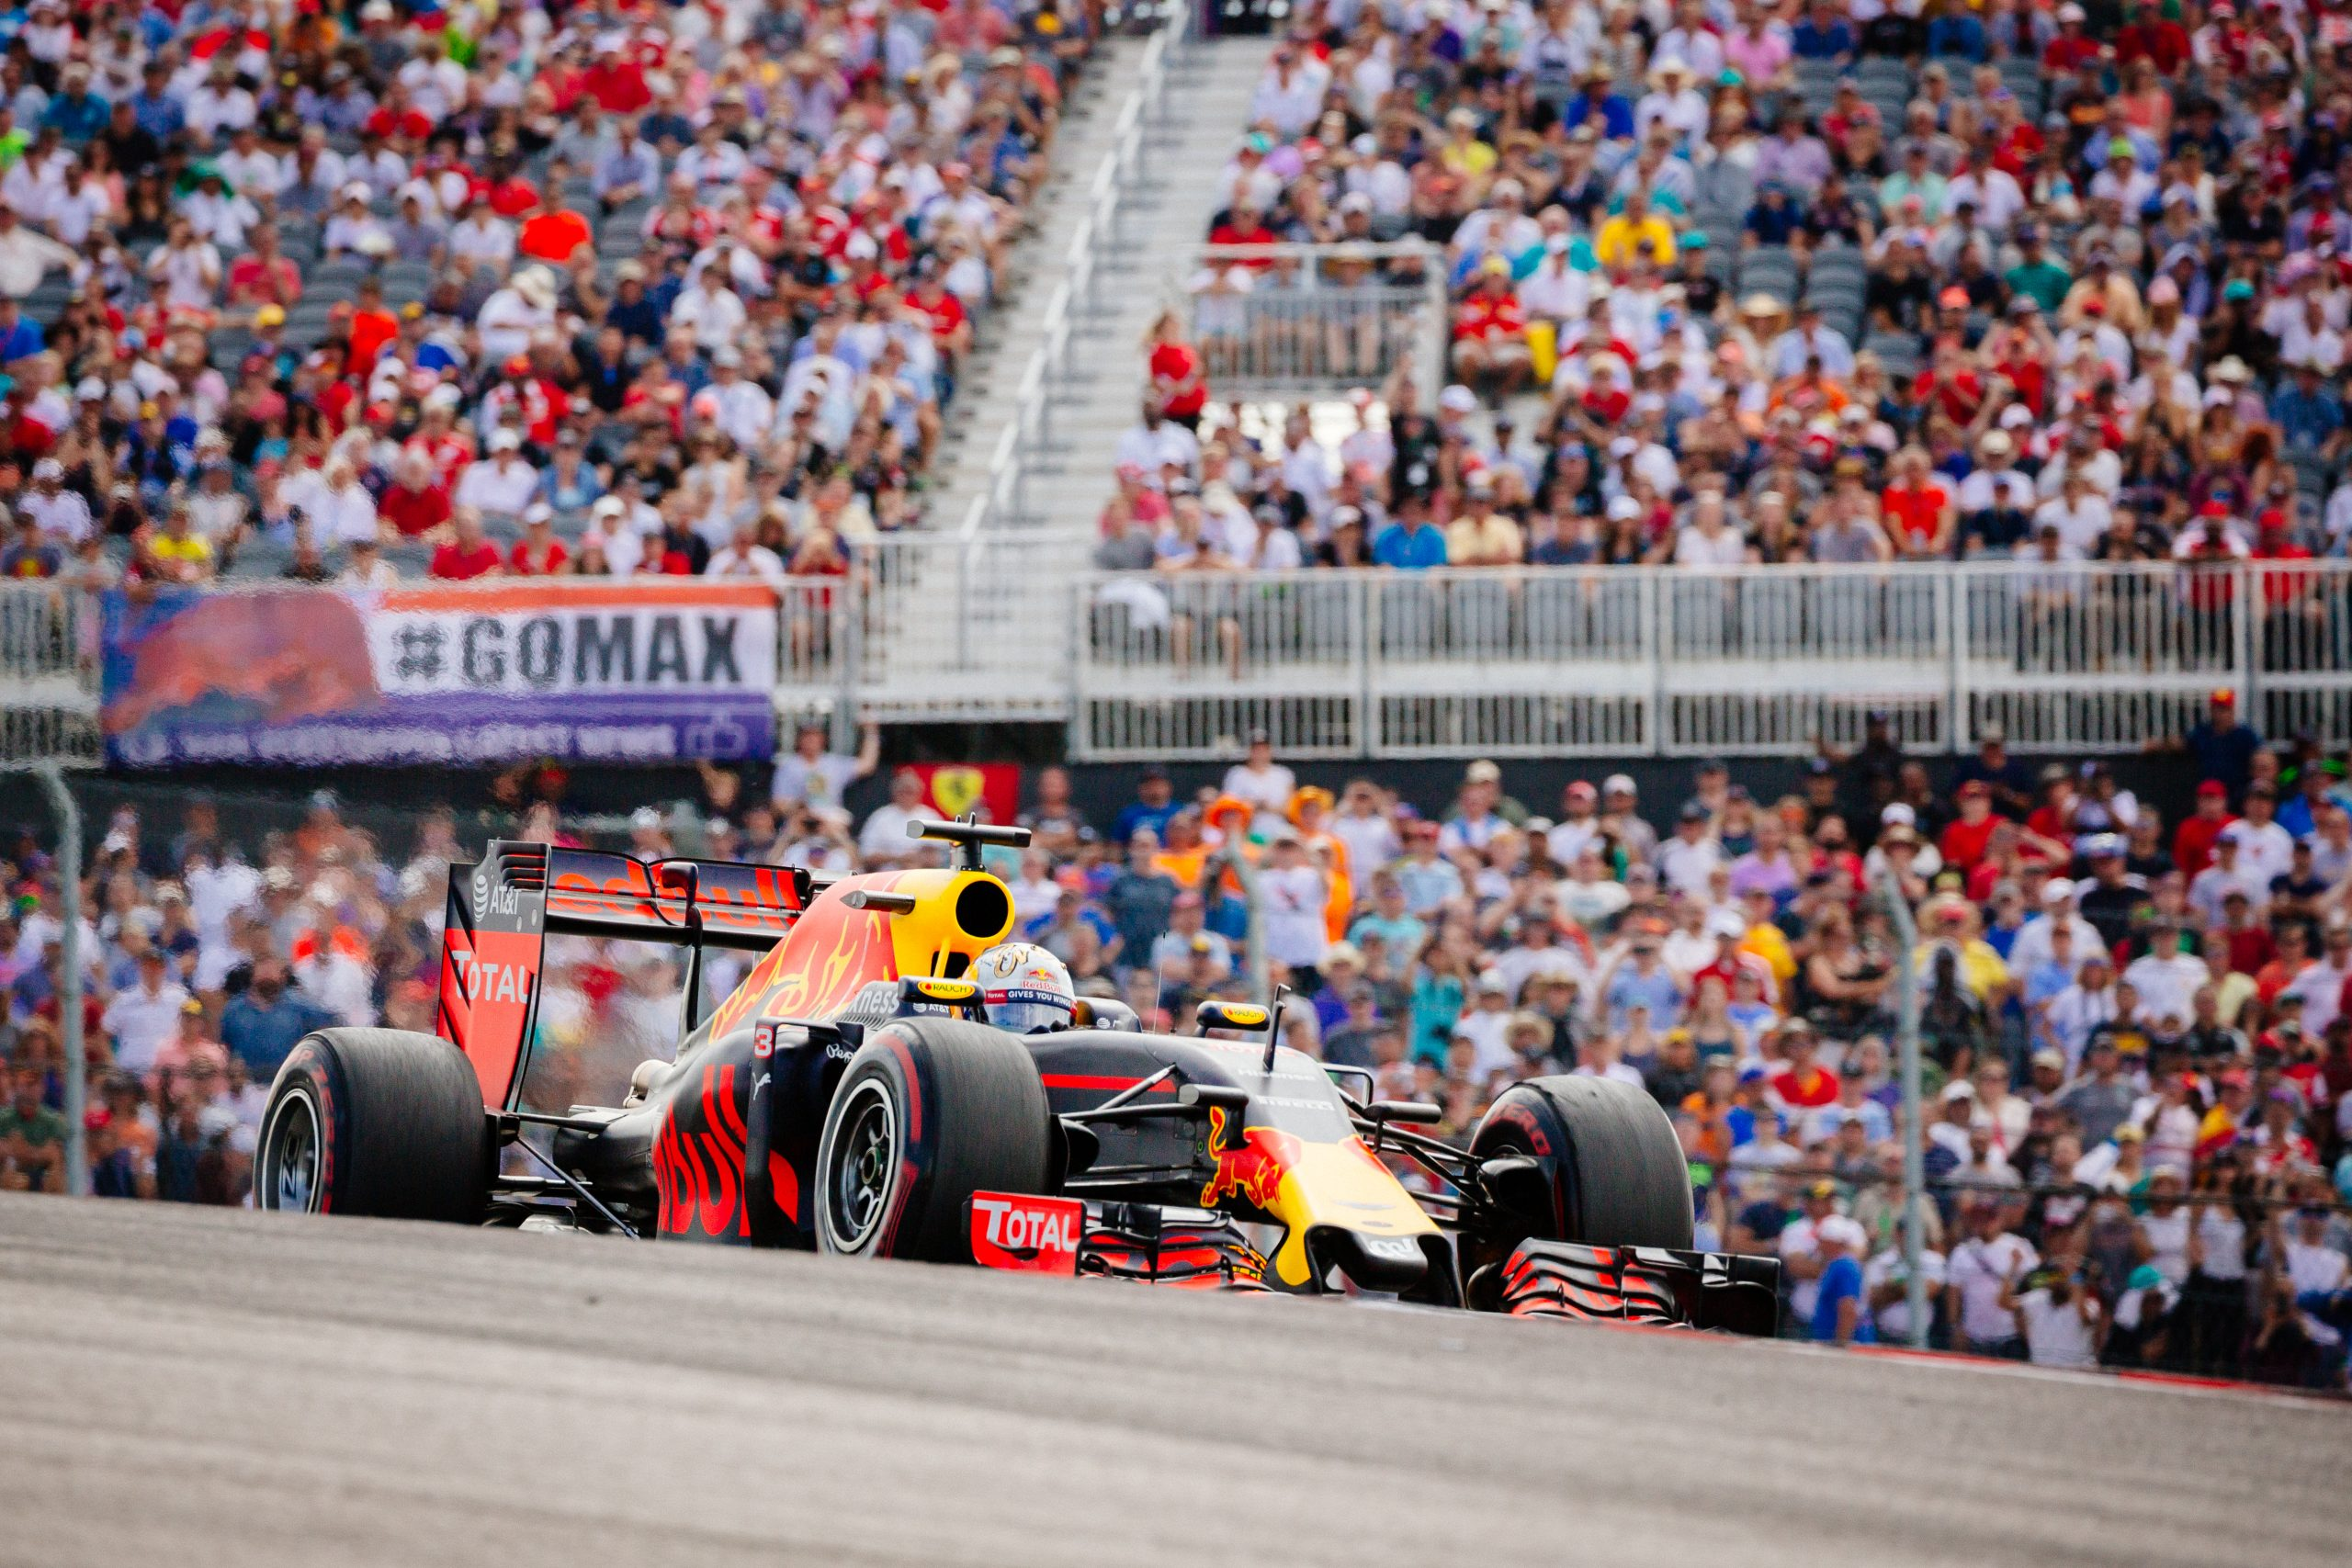 Daniel Ricciardo crests the hill of exiting Turn 1 at Circuit of the Americas during the 2016 F1 United States Grand Prix.